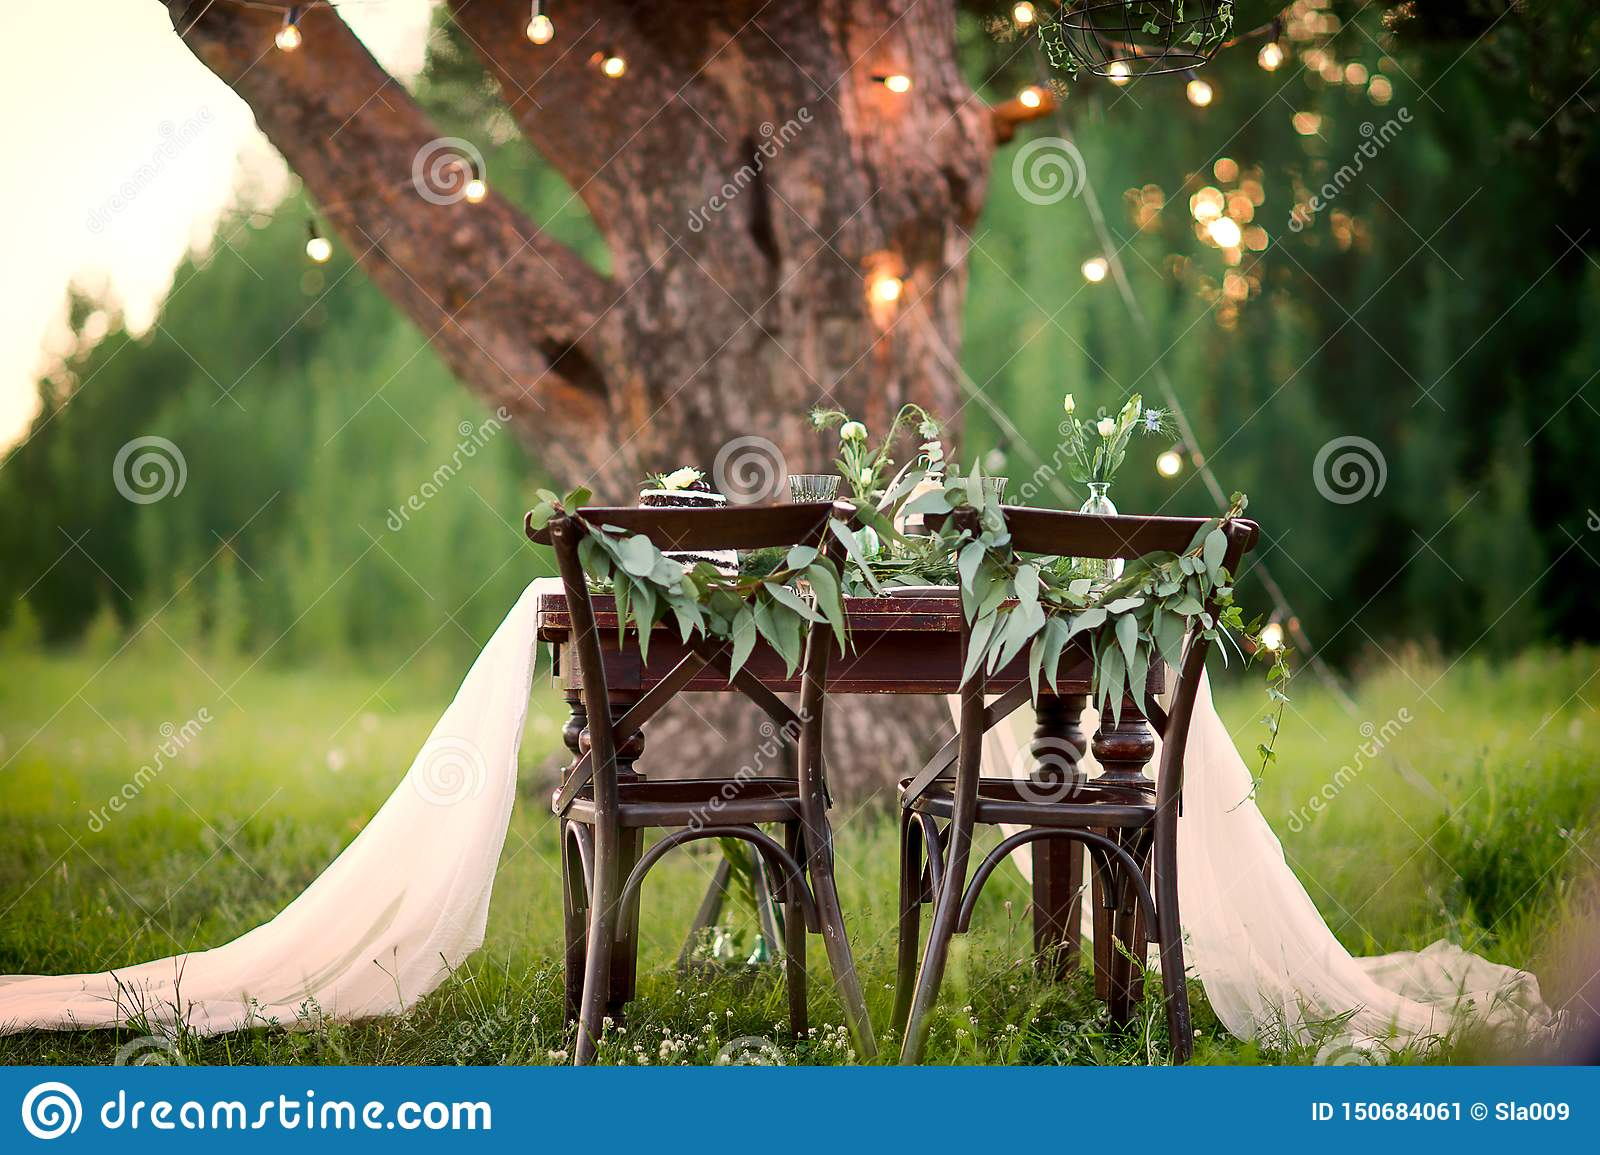 Wedding Rustic Table For Two In The Field At The Pine Tree Stock Image Image Of Background Beautiful 150684061